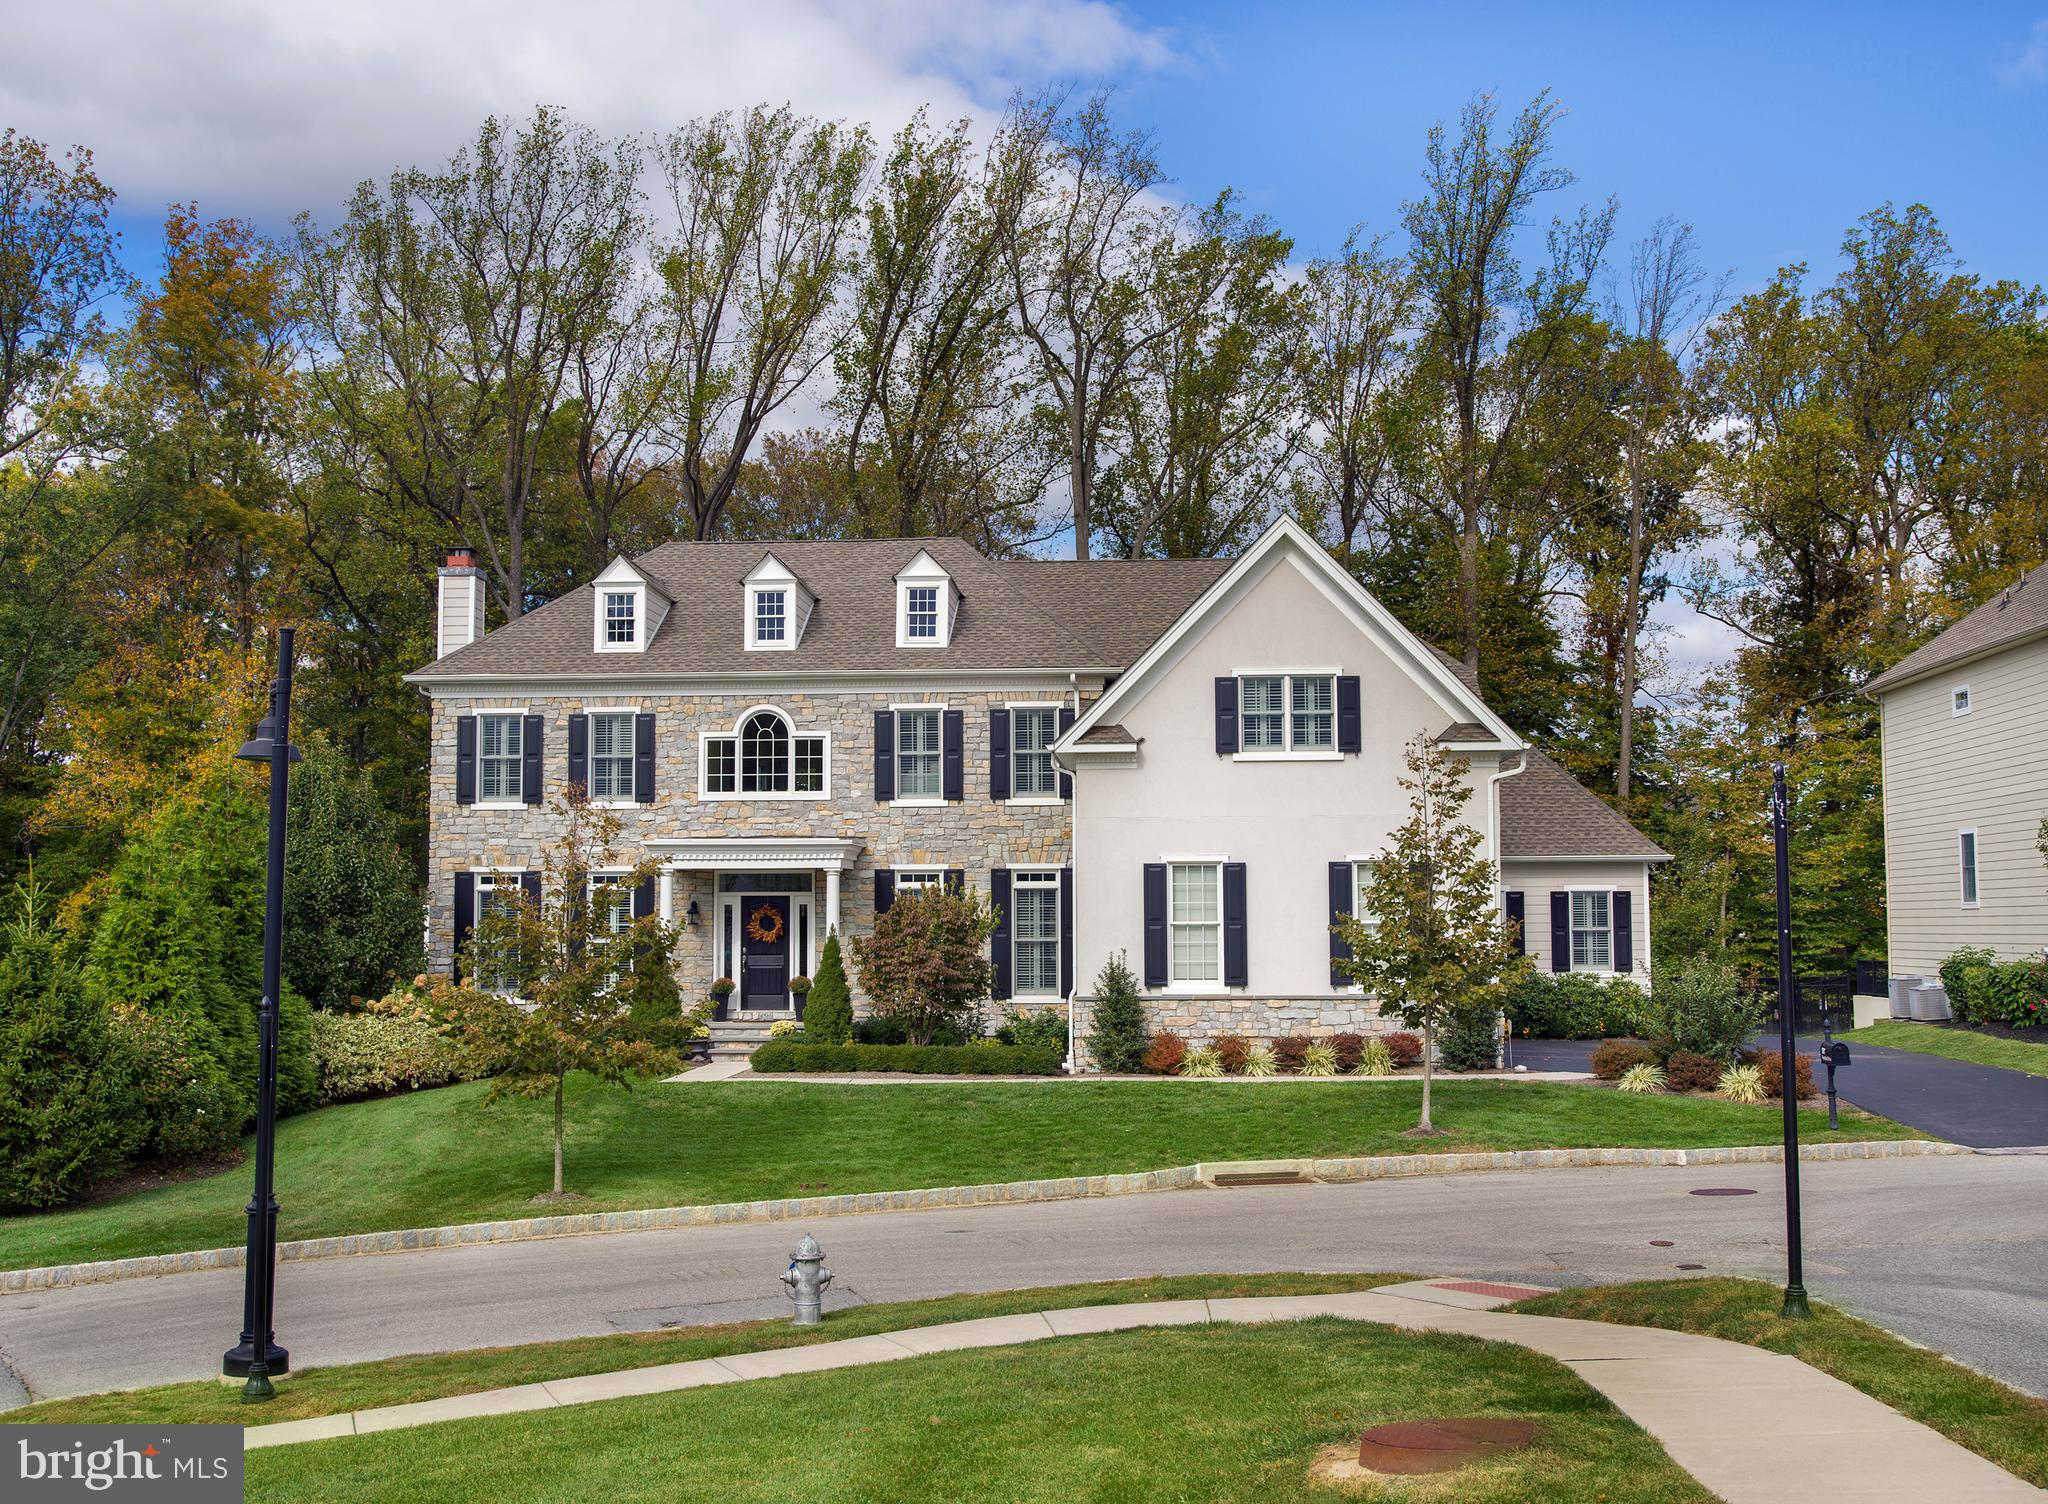 3907 WOODLAND DRIVE, NEWTOWN SQUARE, PA 19073